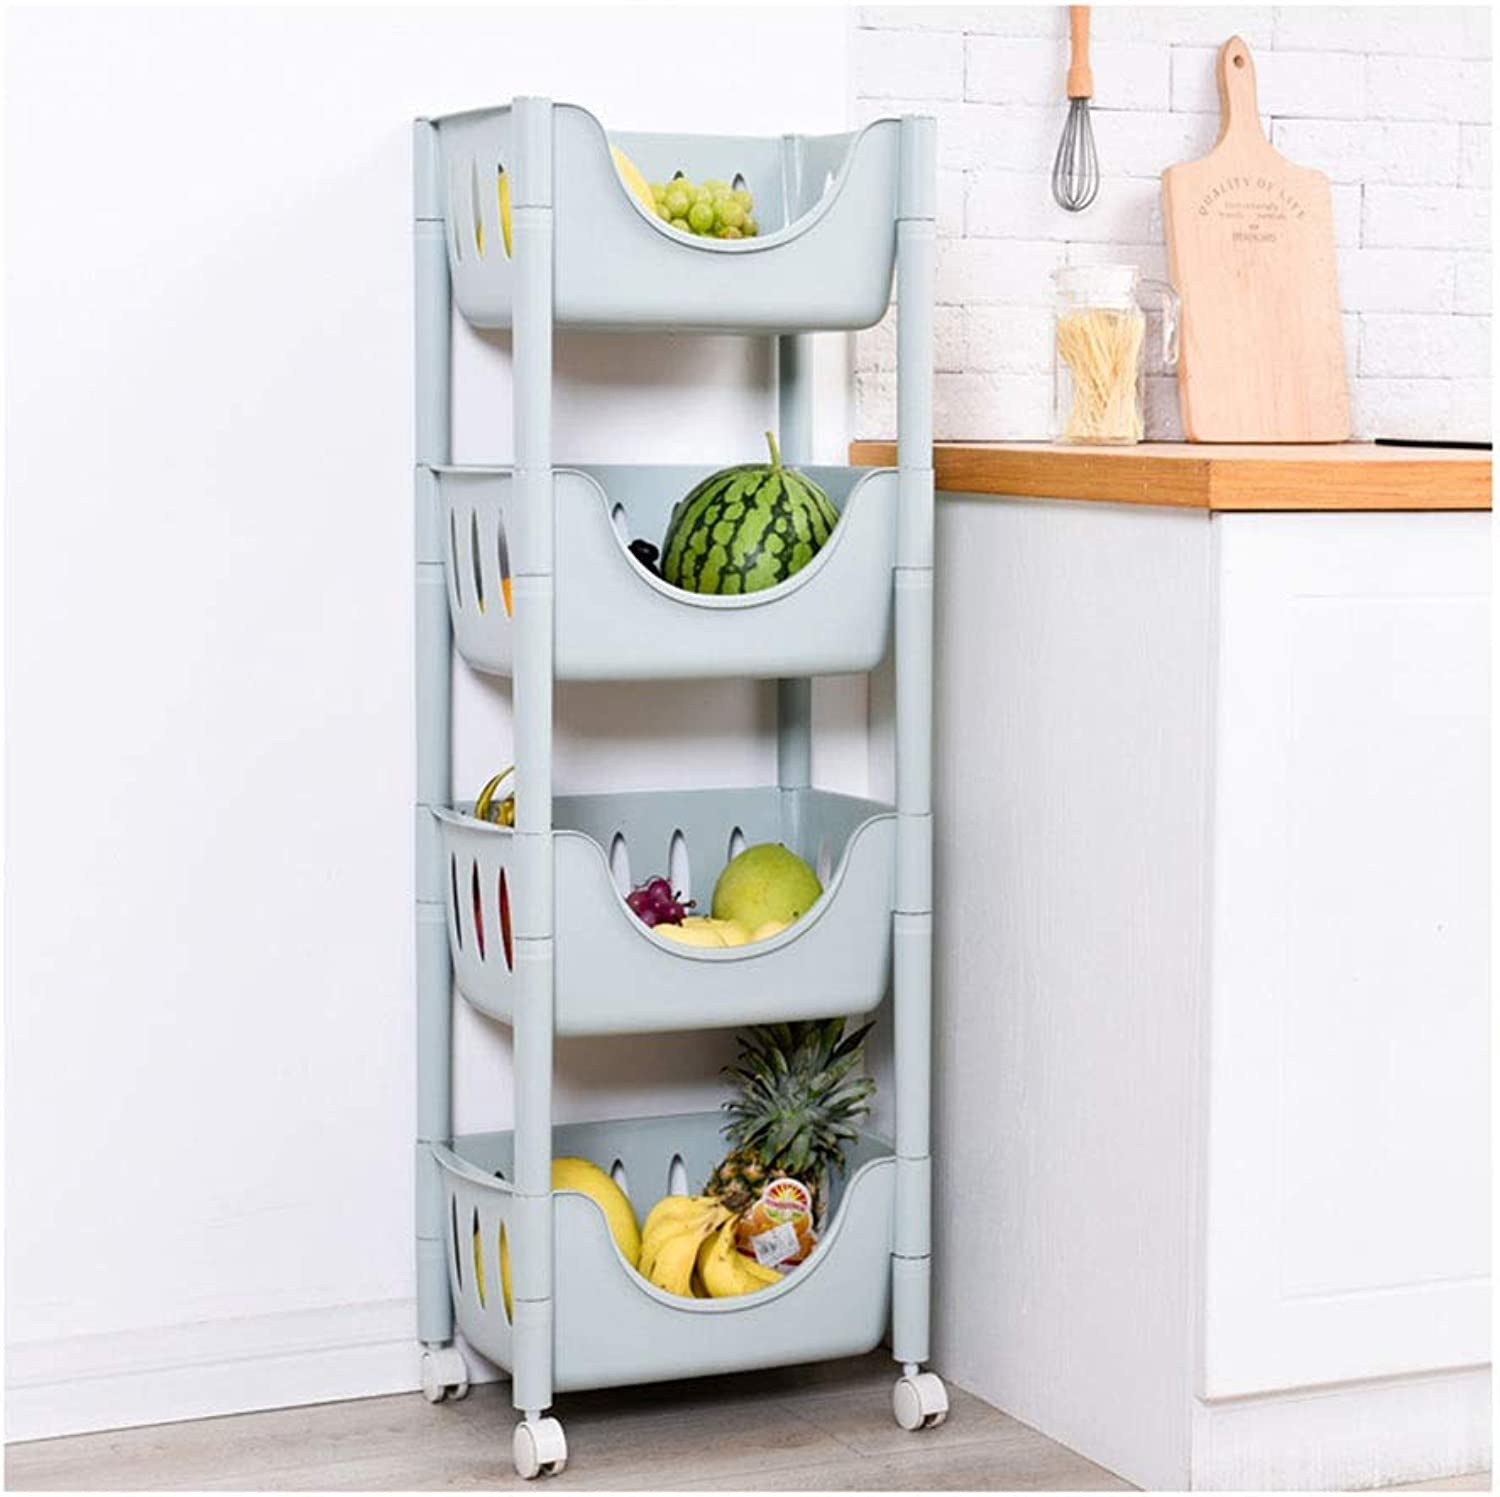 Kitchen Storage Rack Kitchen Living Room Bathroom Rack Small Multi-color Plastic Simple Storage Shelf with Removable Pulley Organisation (color   D, Size   Four-Tier)